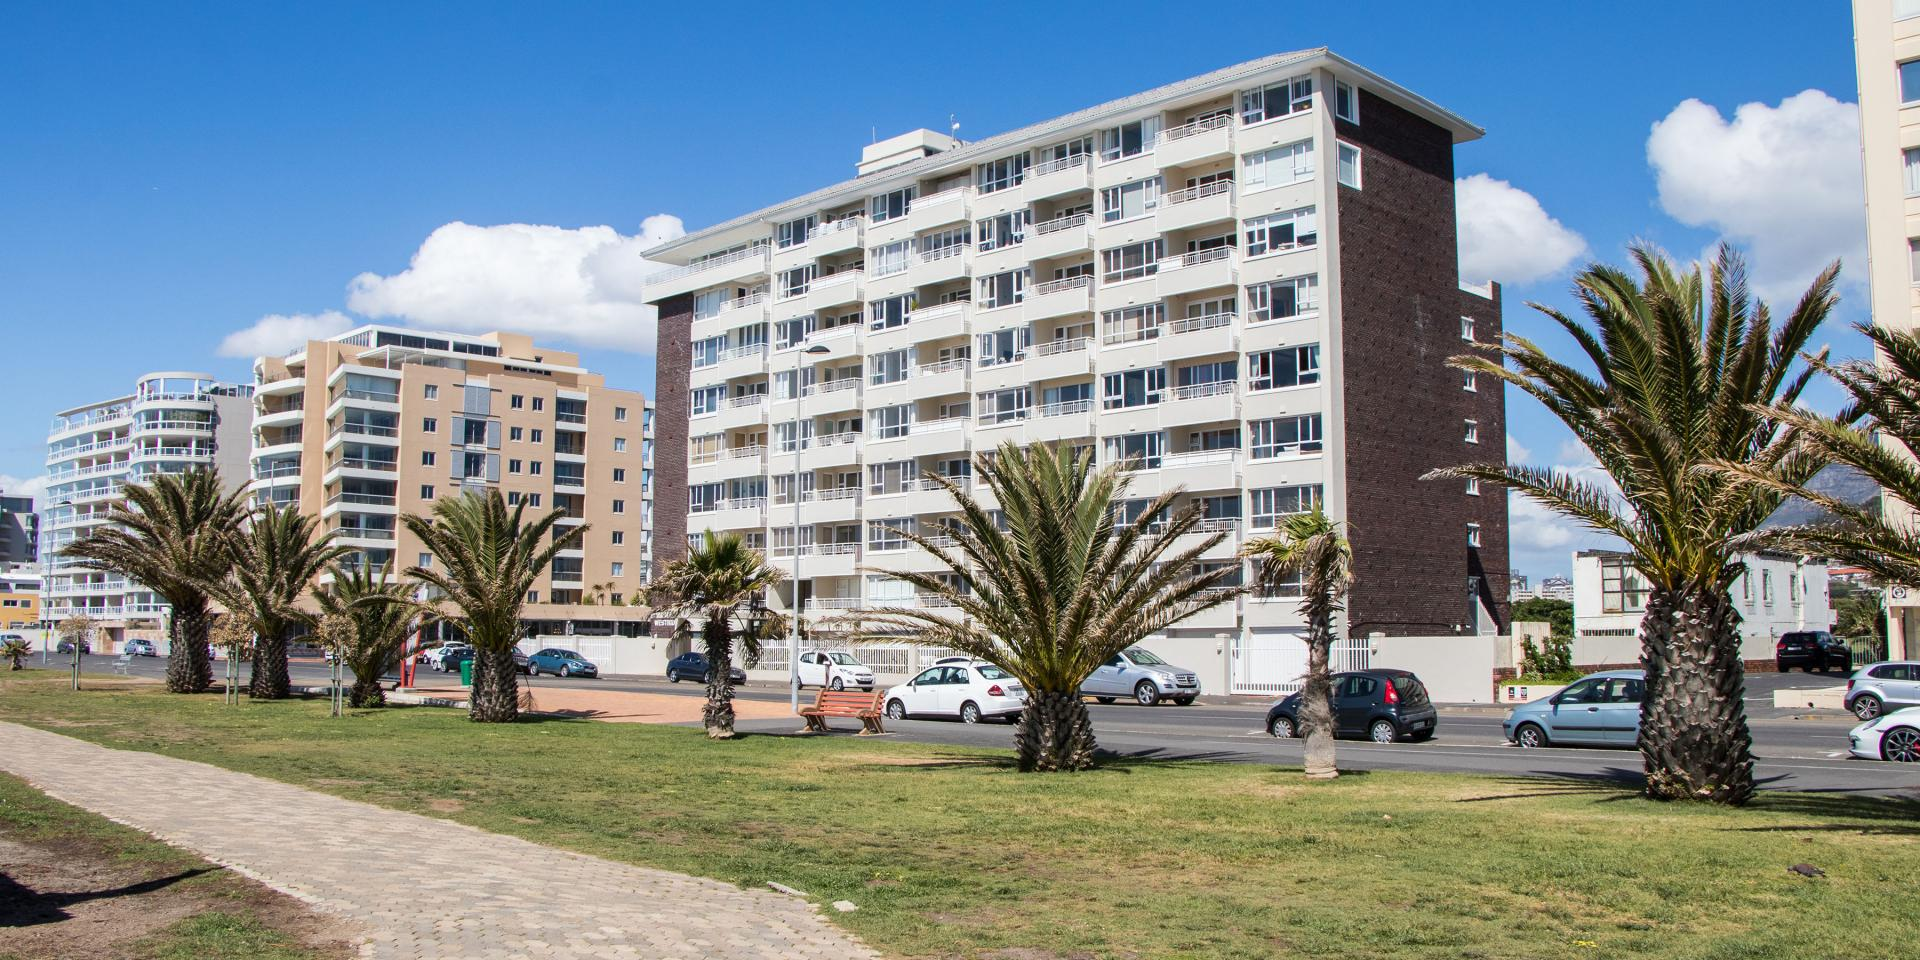 Exterior at Mouille Point Village - Citybase Apartments